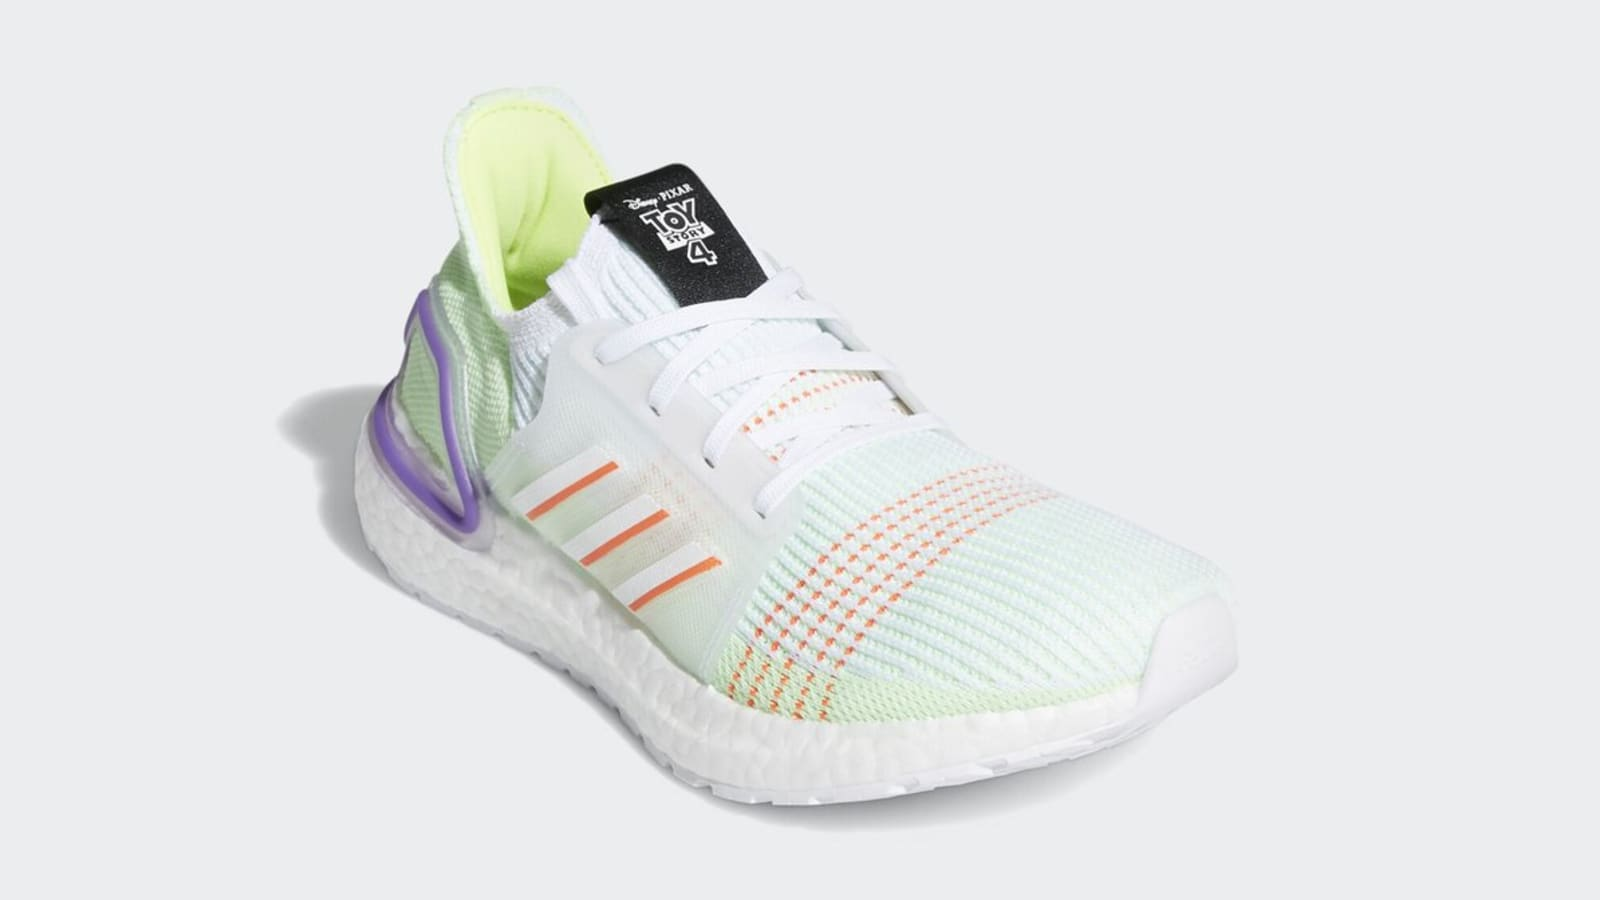 """Adidas UltraBoost 2019 """"Toy Story 4"""" Models Drop This Month: Detail"""